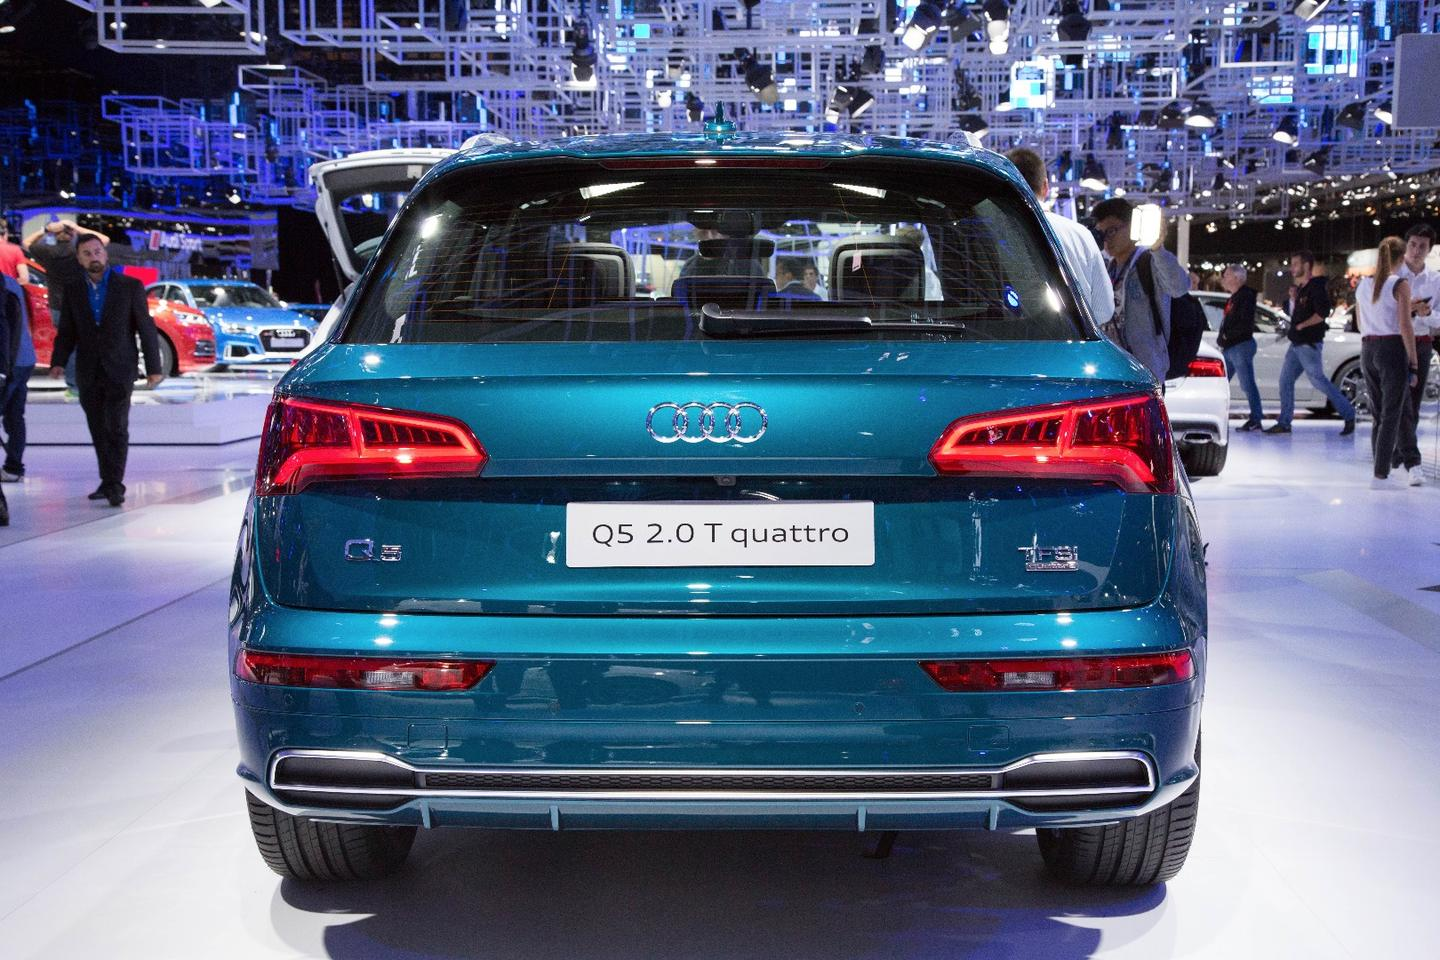 The Q5 is all new, but looks very similar to the old model from the outside